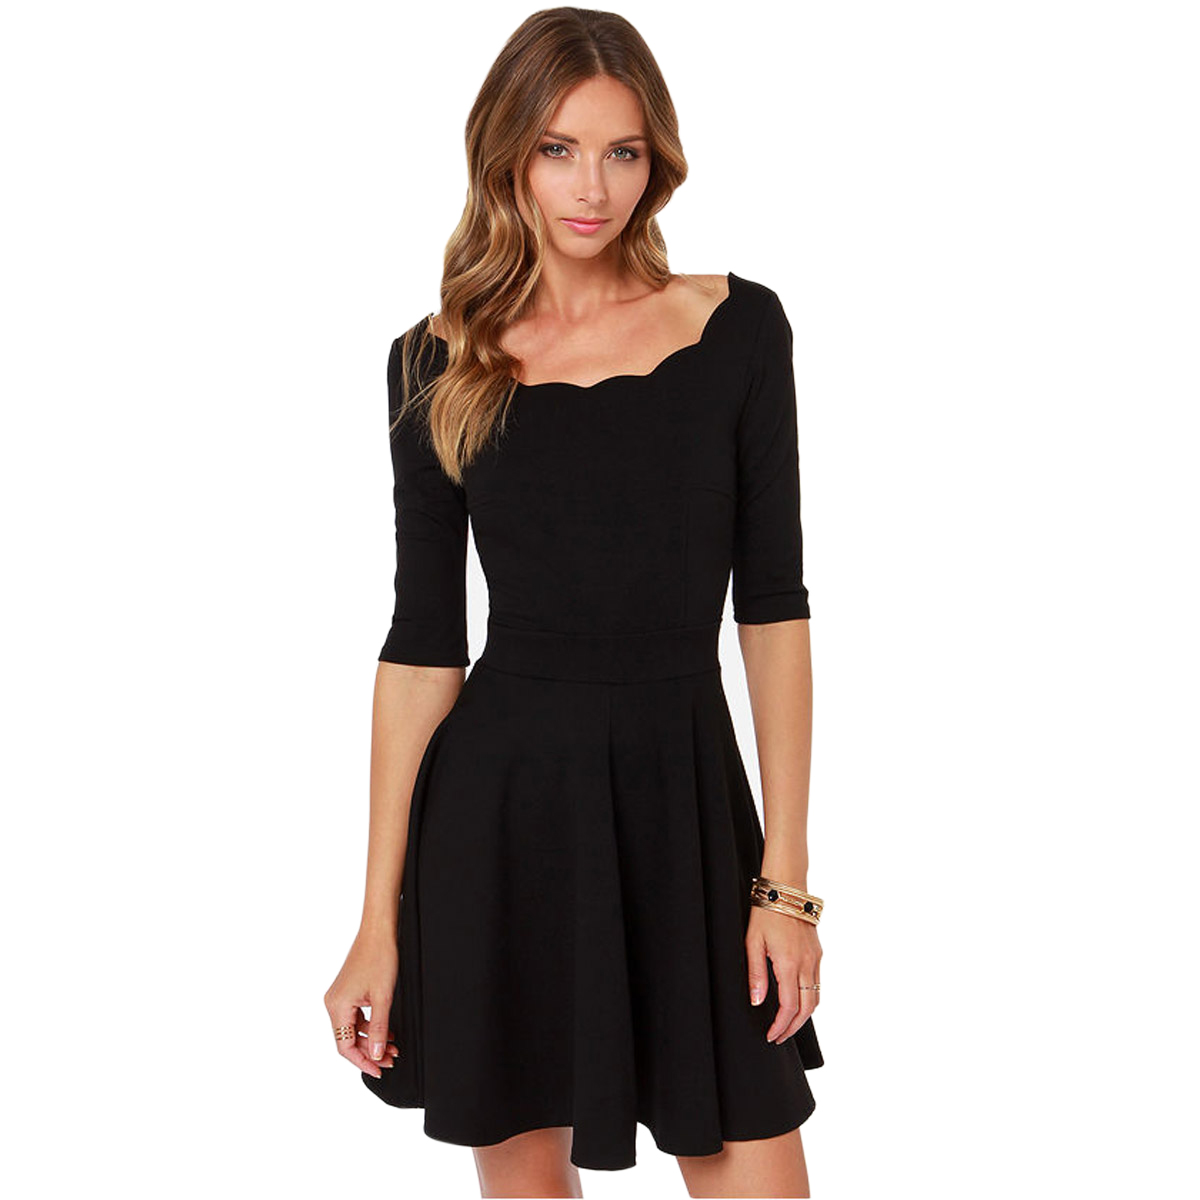 CLASSIC LITTLE BLACK DRESS - Nasha Bendes